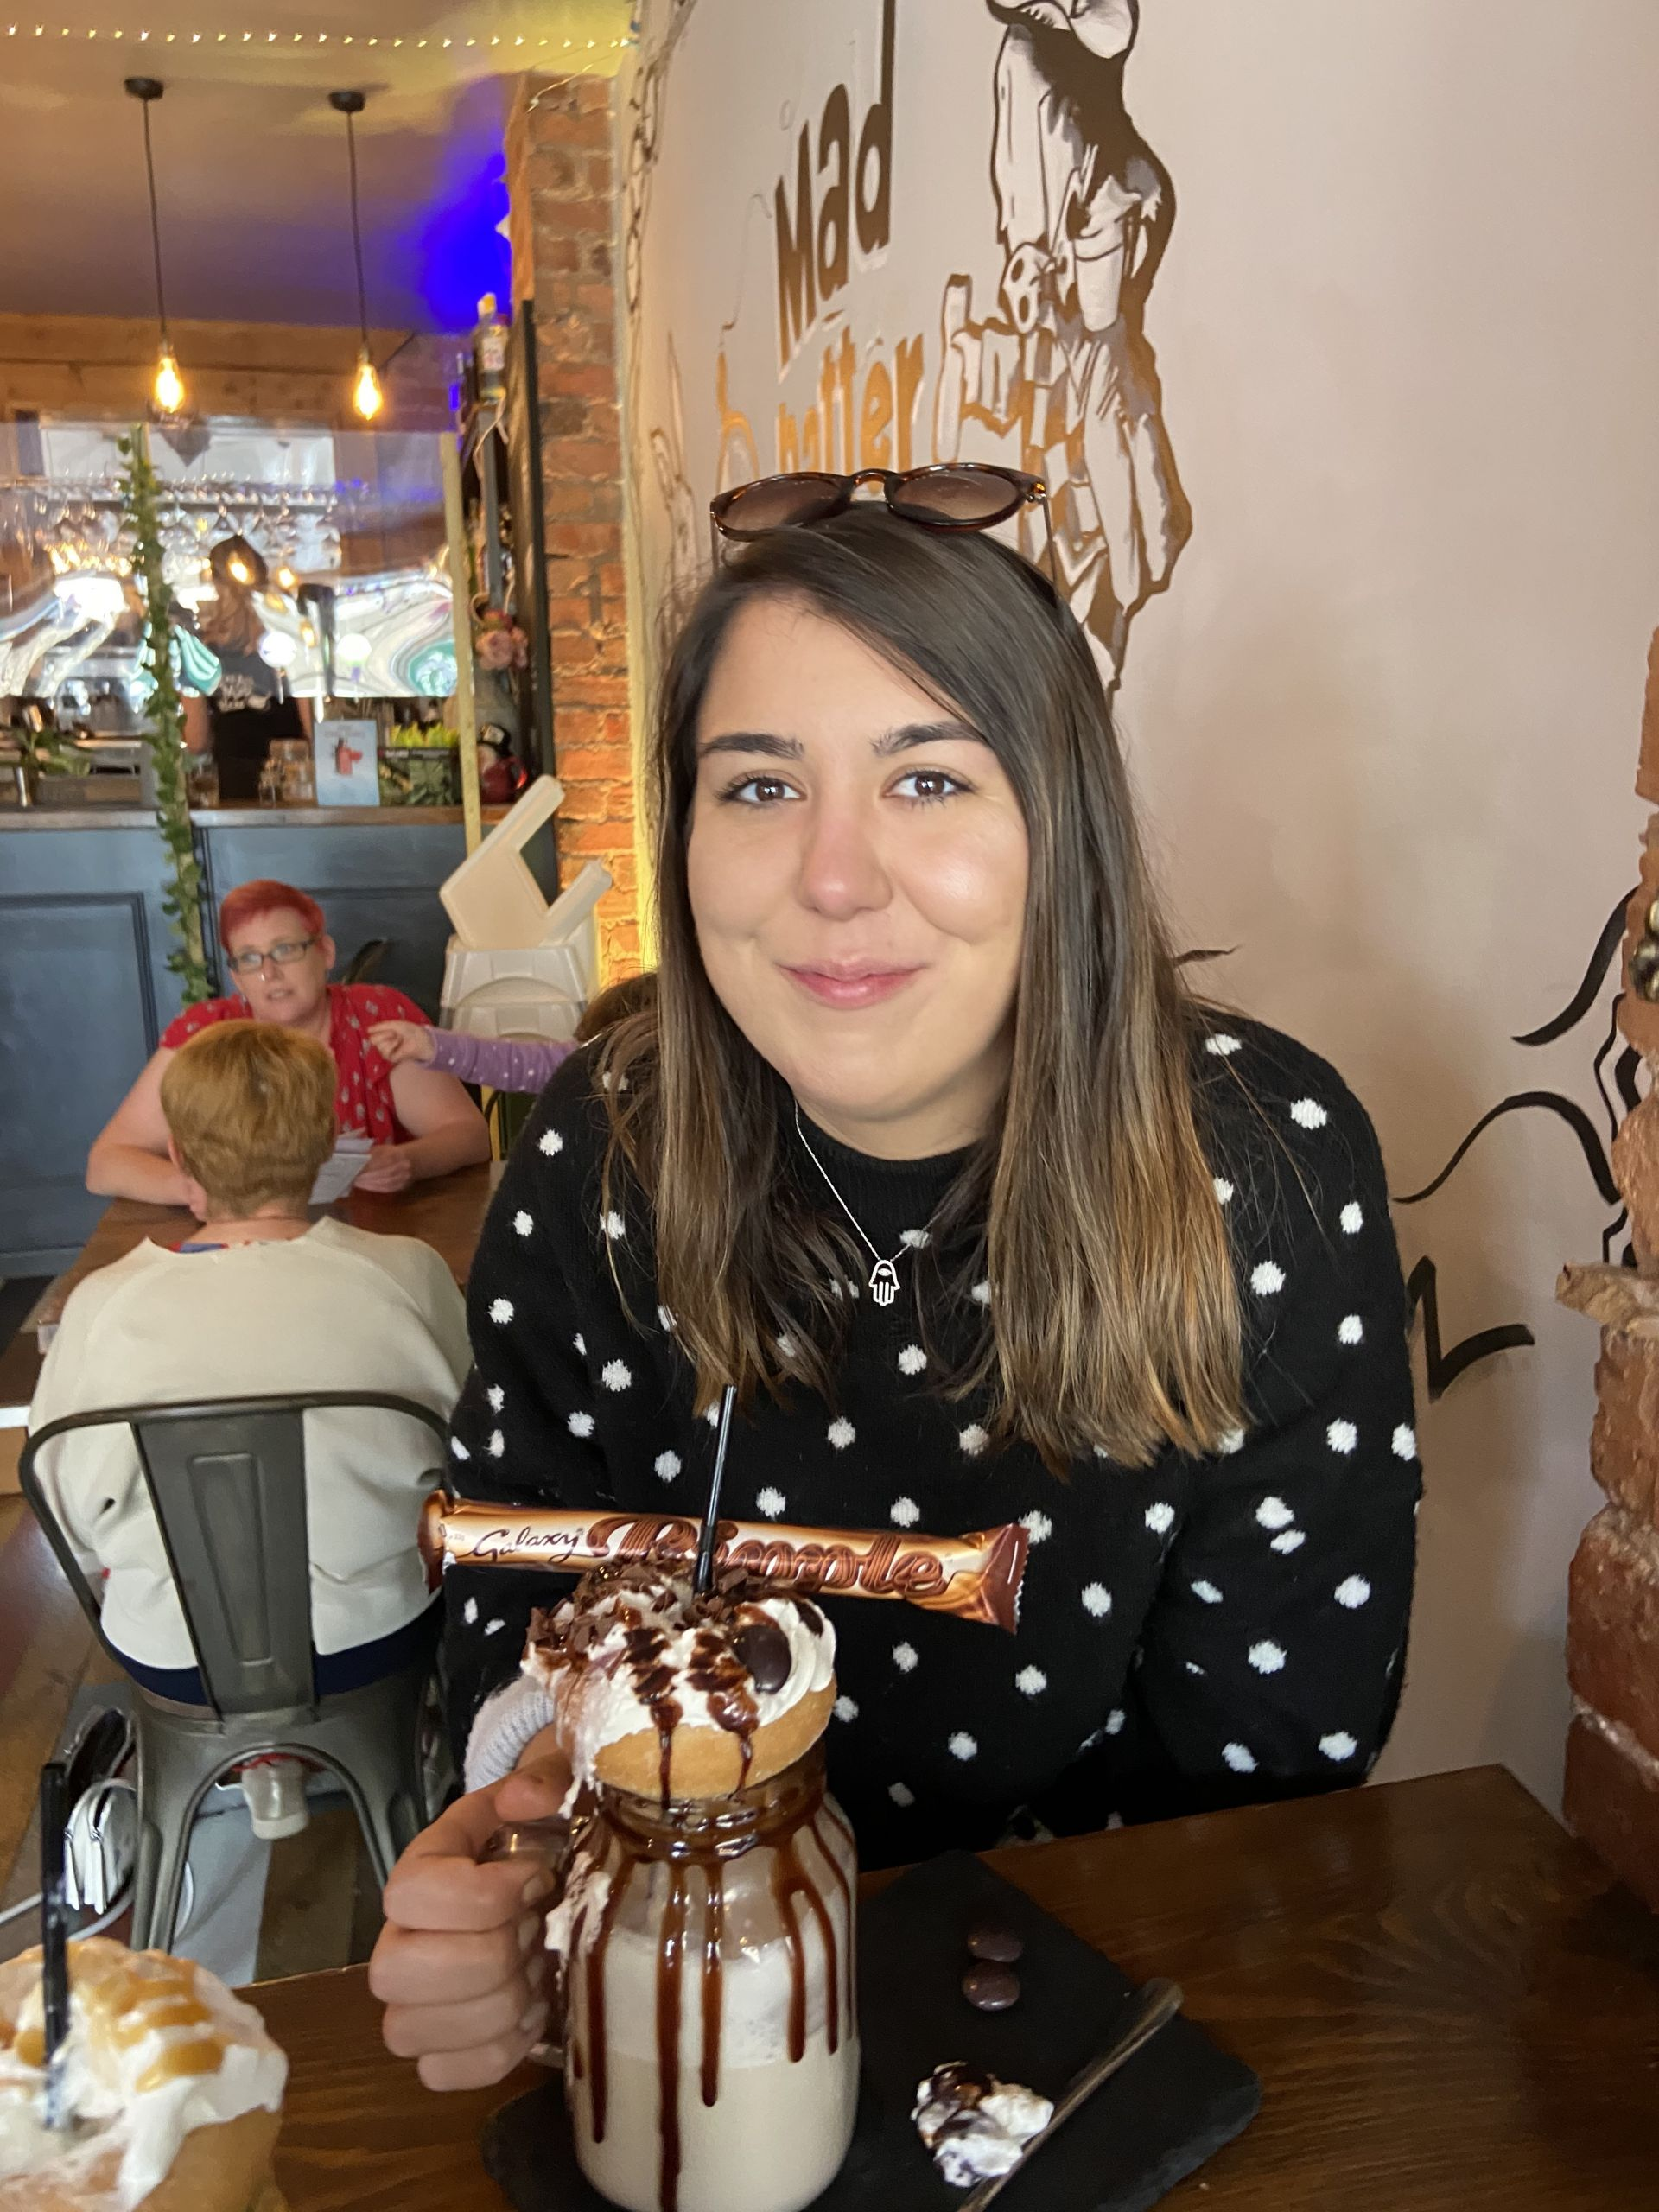 me sat with a freakshake in the Mad Hatter's Cafe in Matlock, in the Peak District